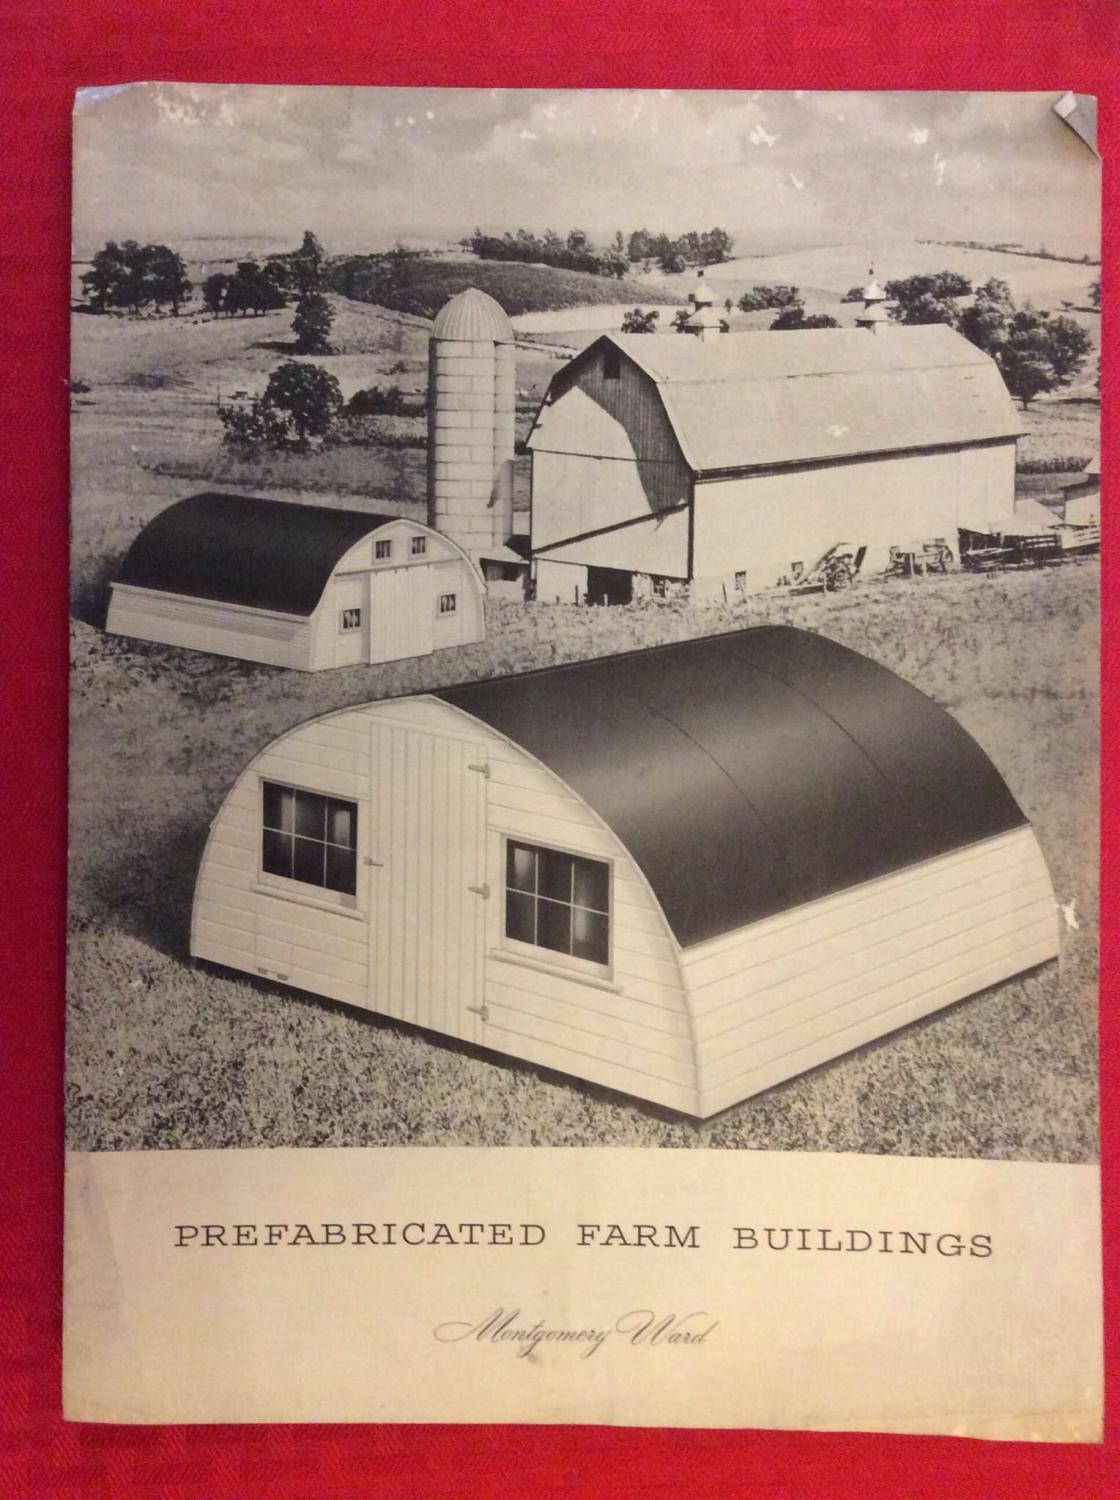 Prefabricated Farm Buildings By Montgomery Ward Good Soft Cover 1947 Boojum And Snark Books